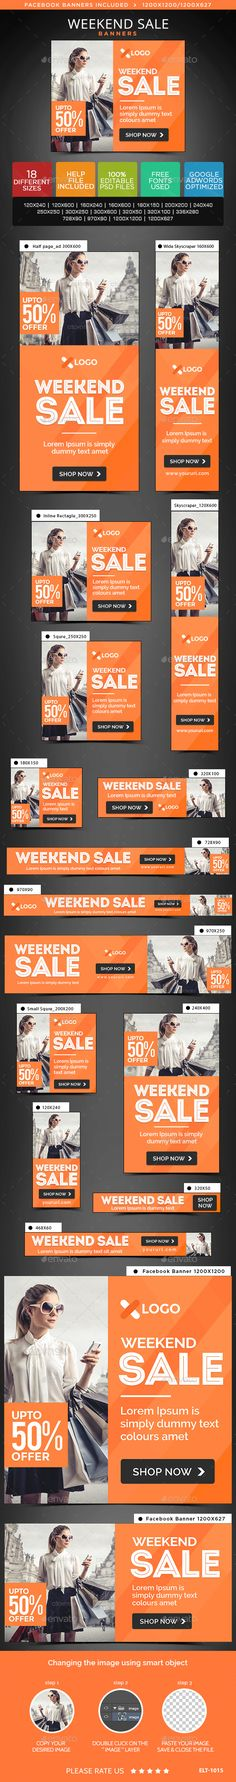 Weekend Sale Web Banners Template PSD #ad #design Download: http://graphicriver.net/item/weekend-sale-banners/14287373?ref=ksioks